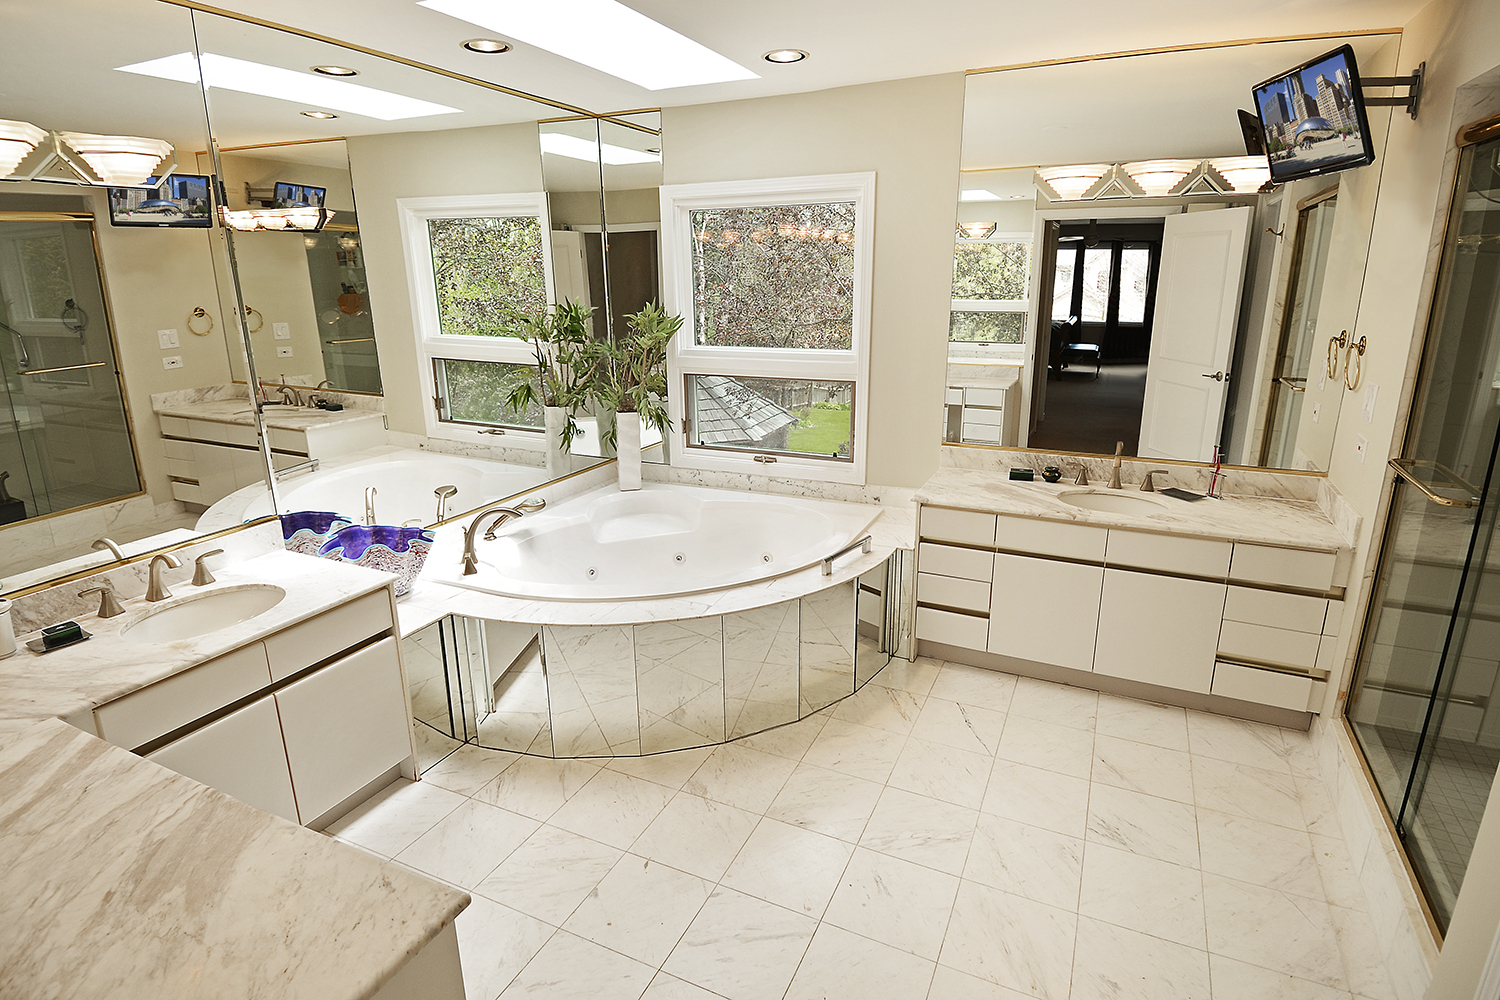 whirlpool bath tub in marble bathroom brightly lit with two TVs mounted on walls